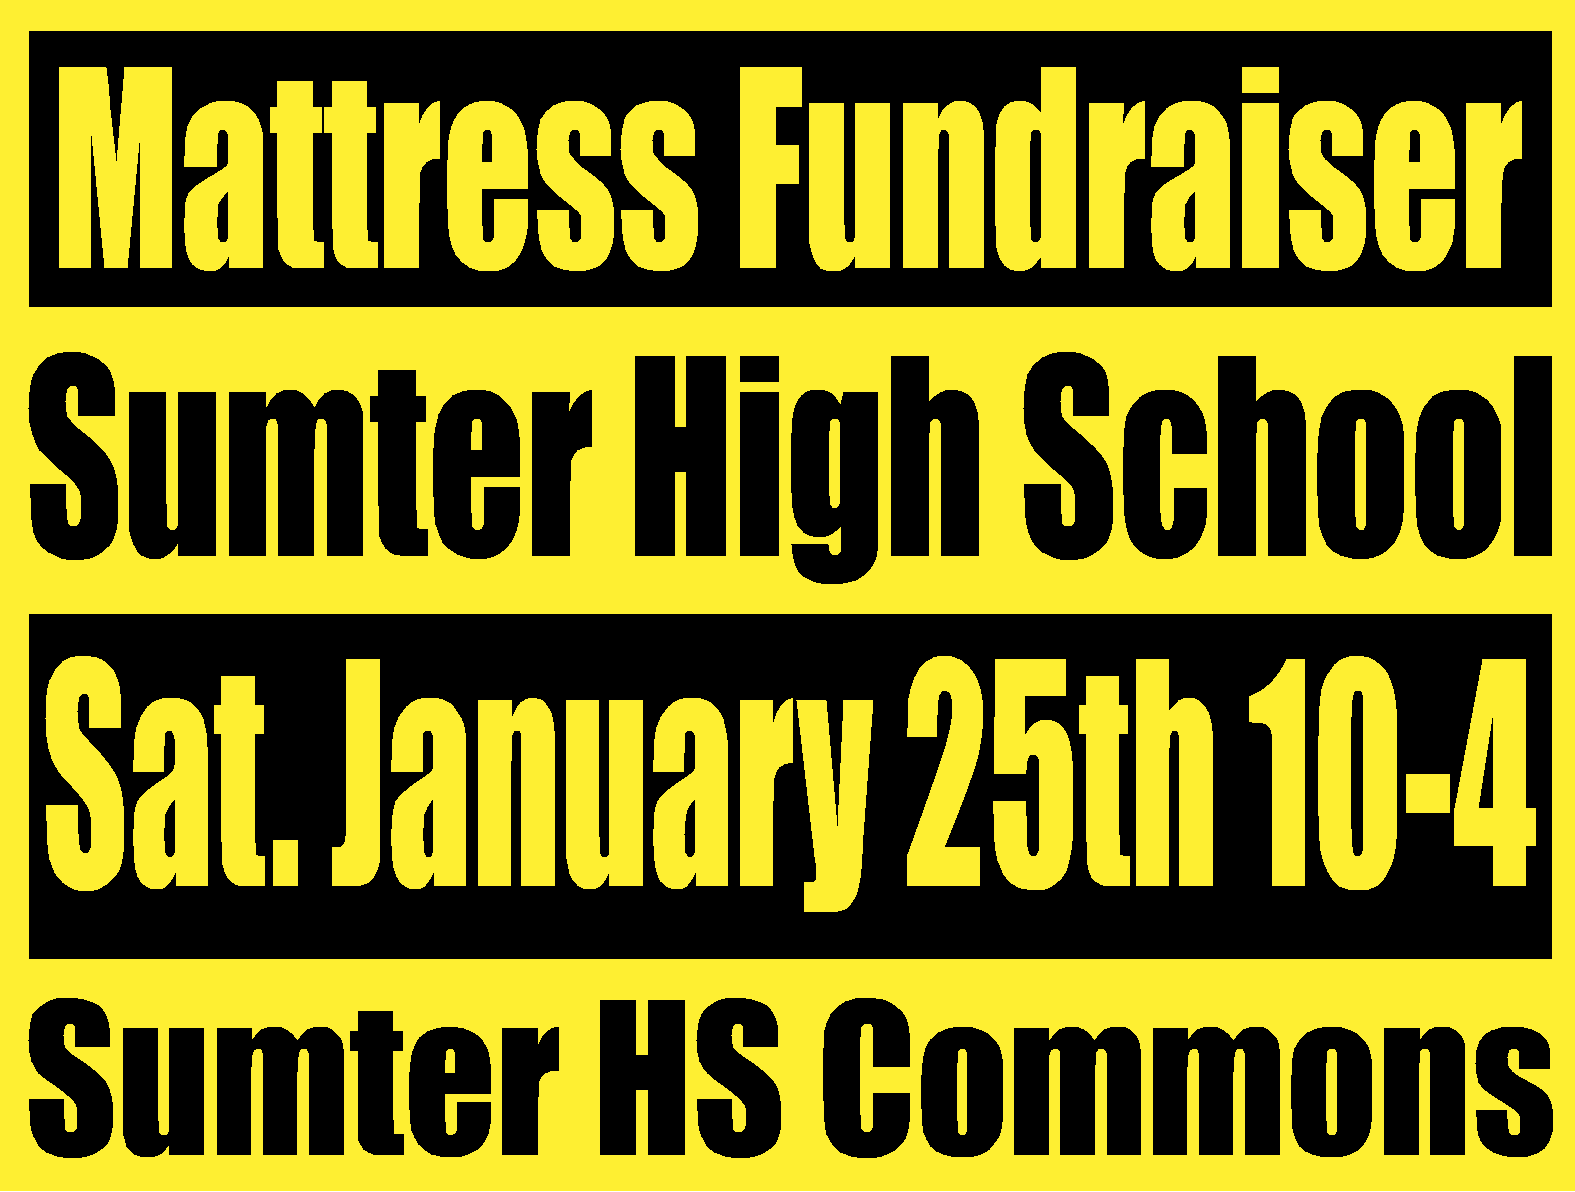 Sumter HS to hold Mattress Fundraiser January 25